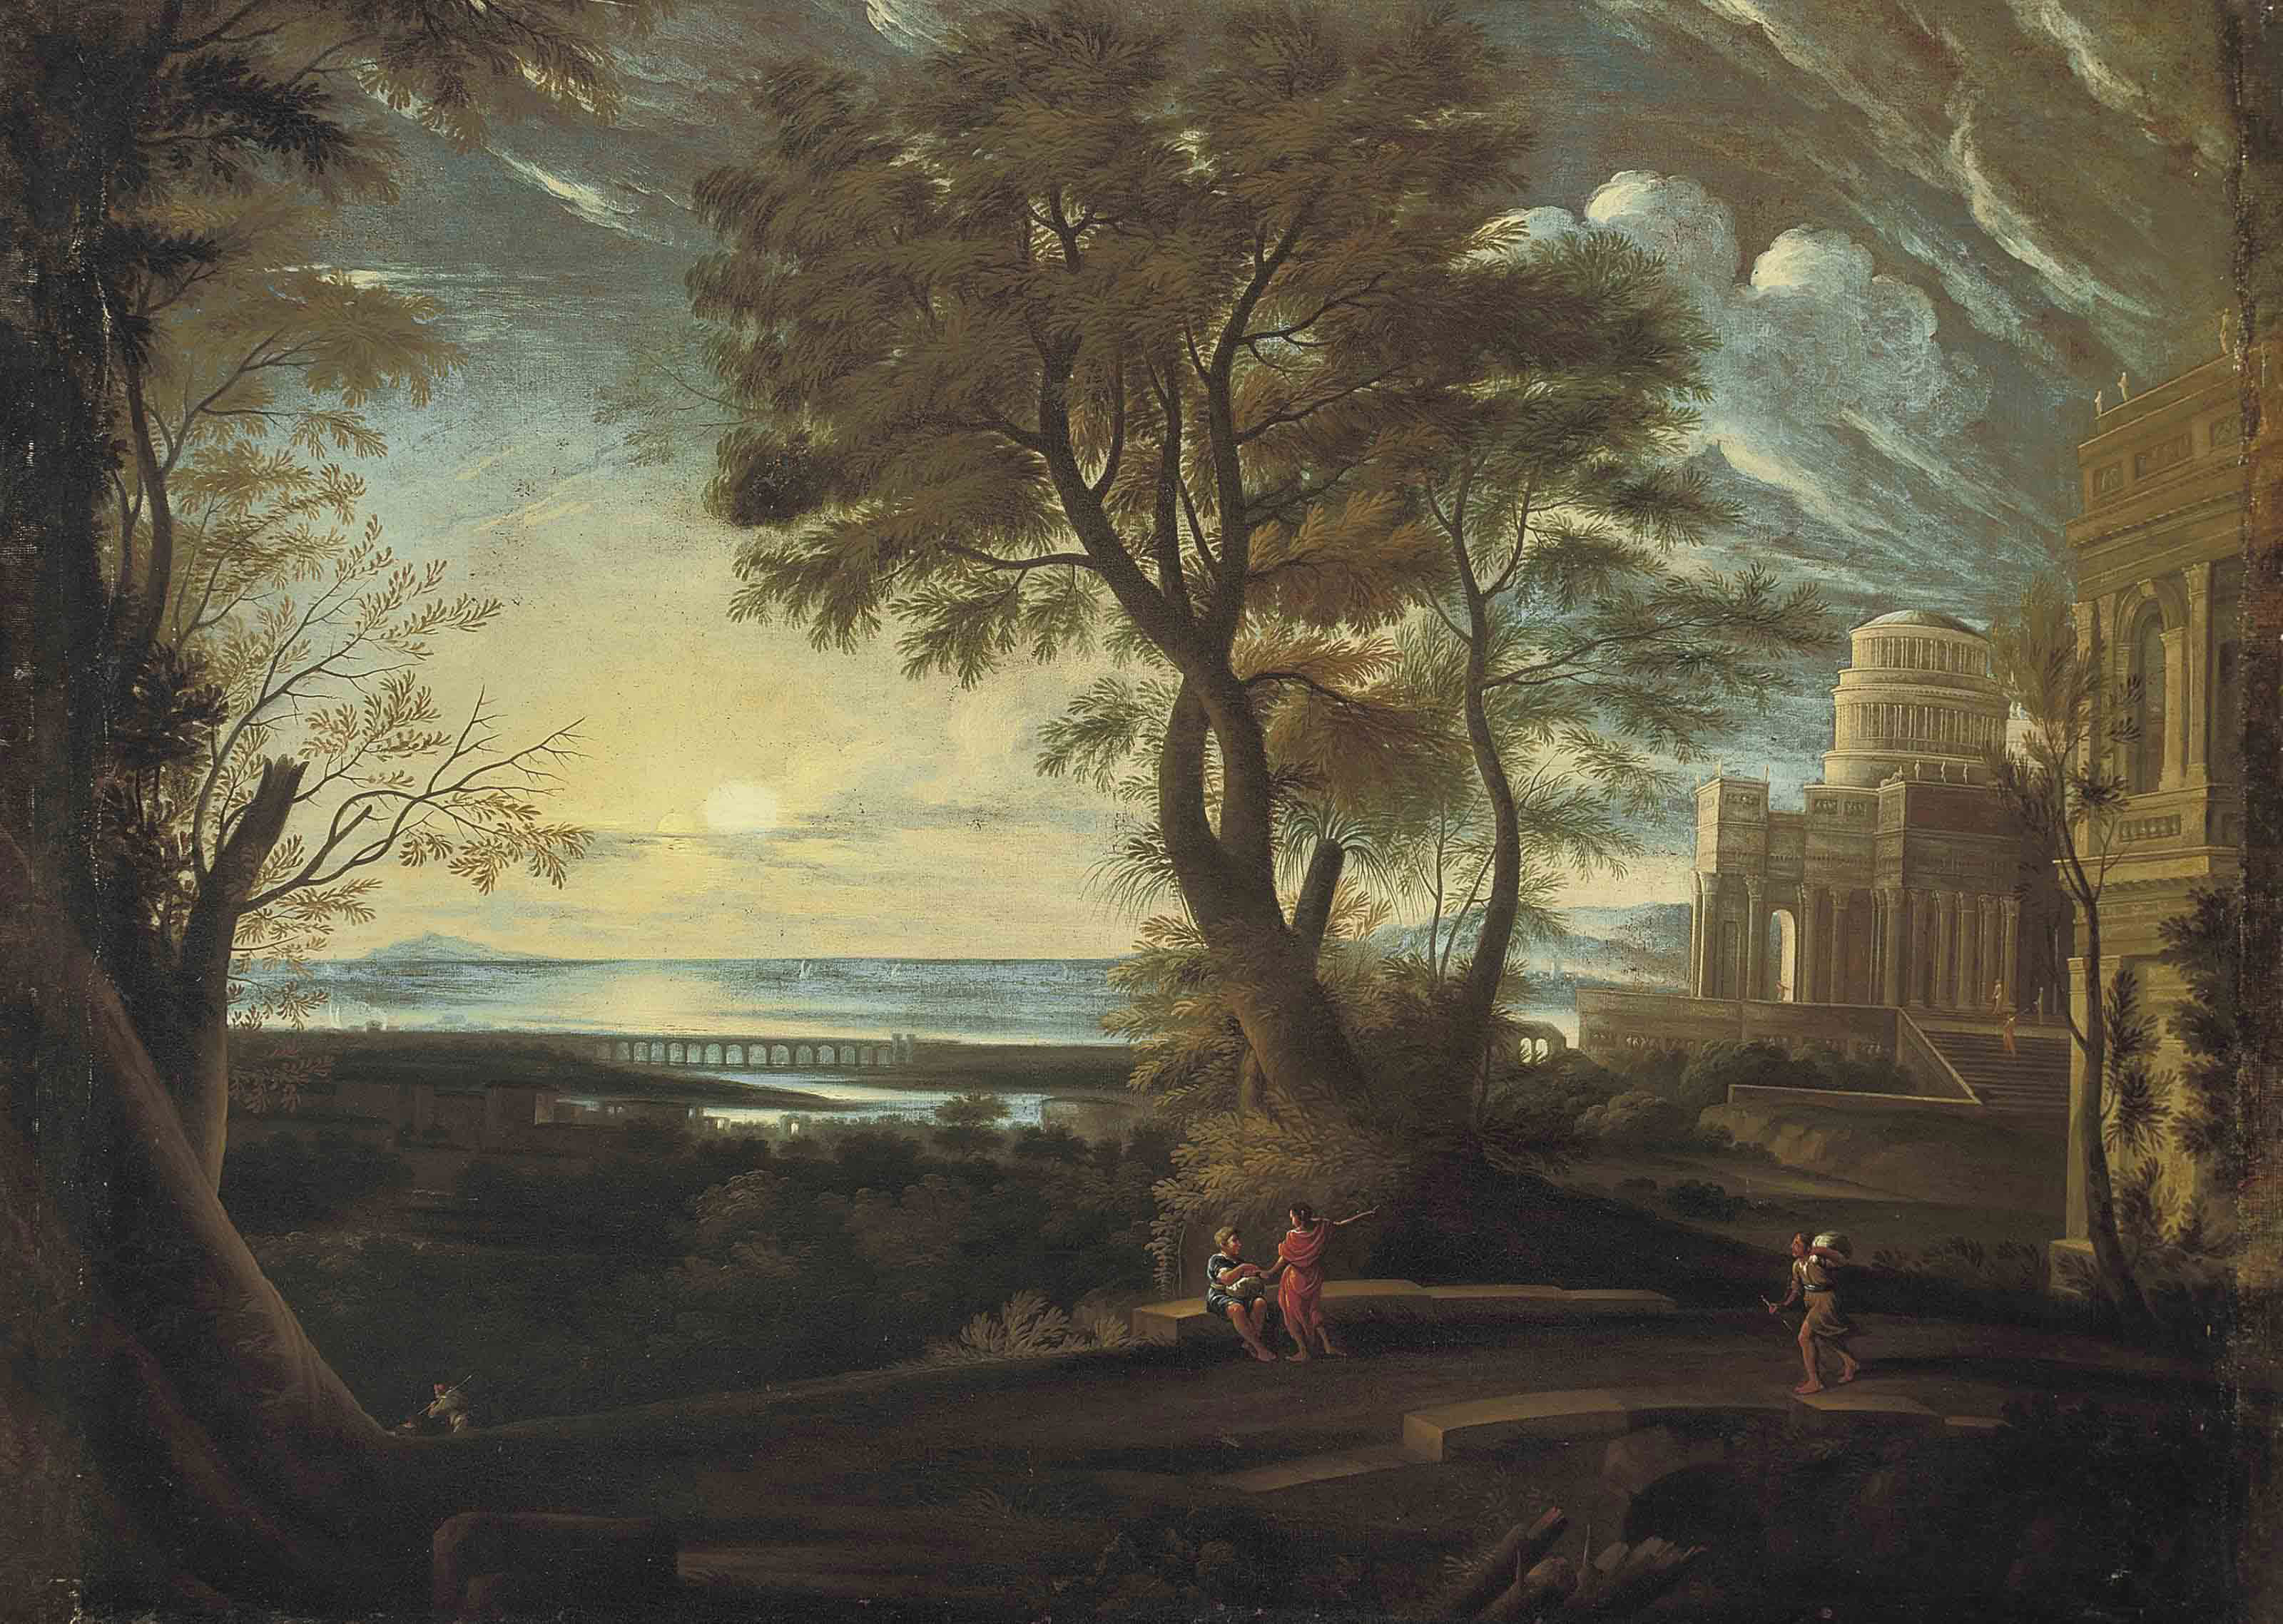 A classical landscape with figures resting on a bridge